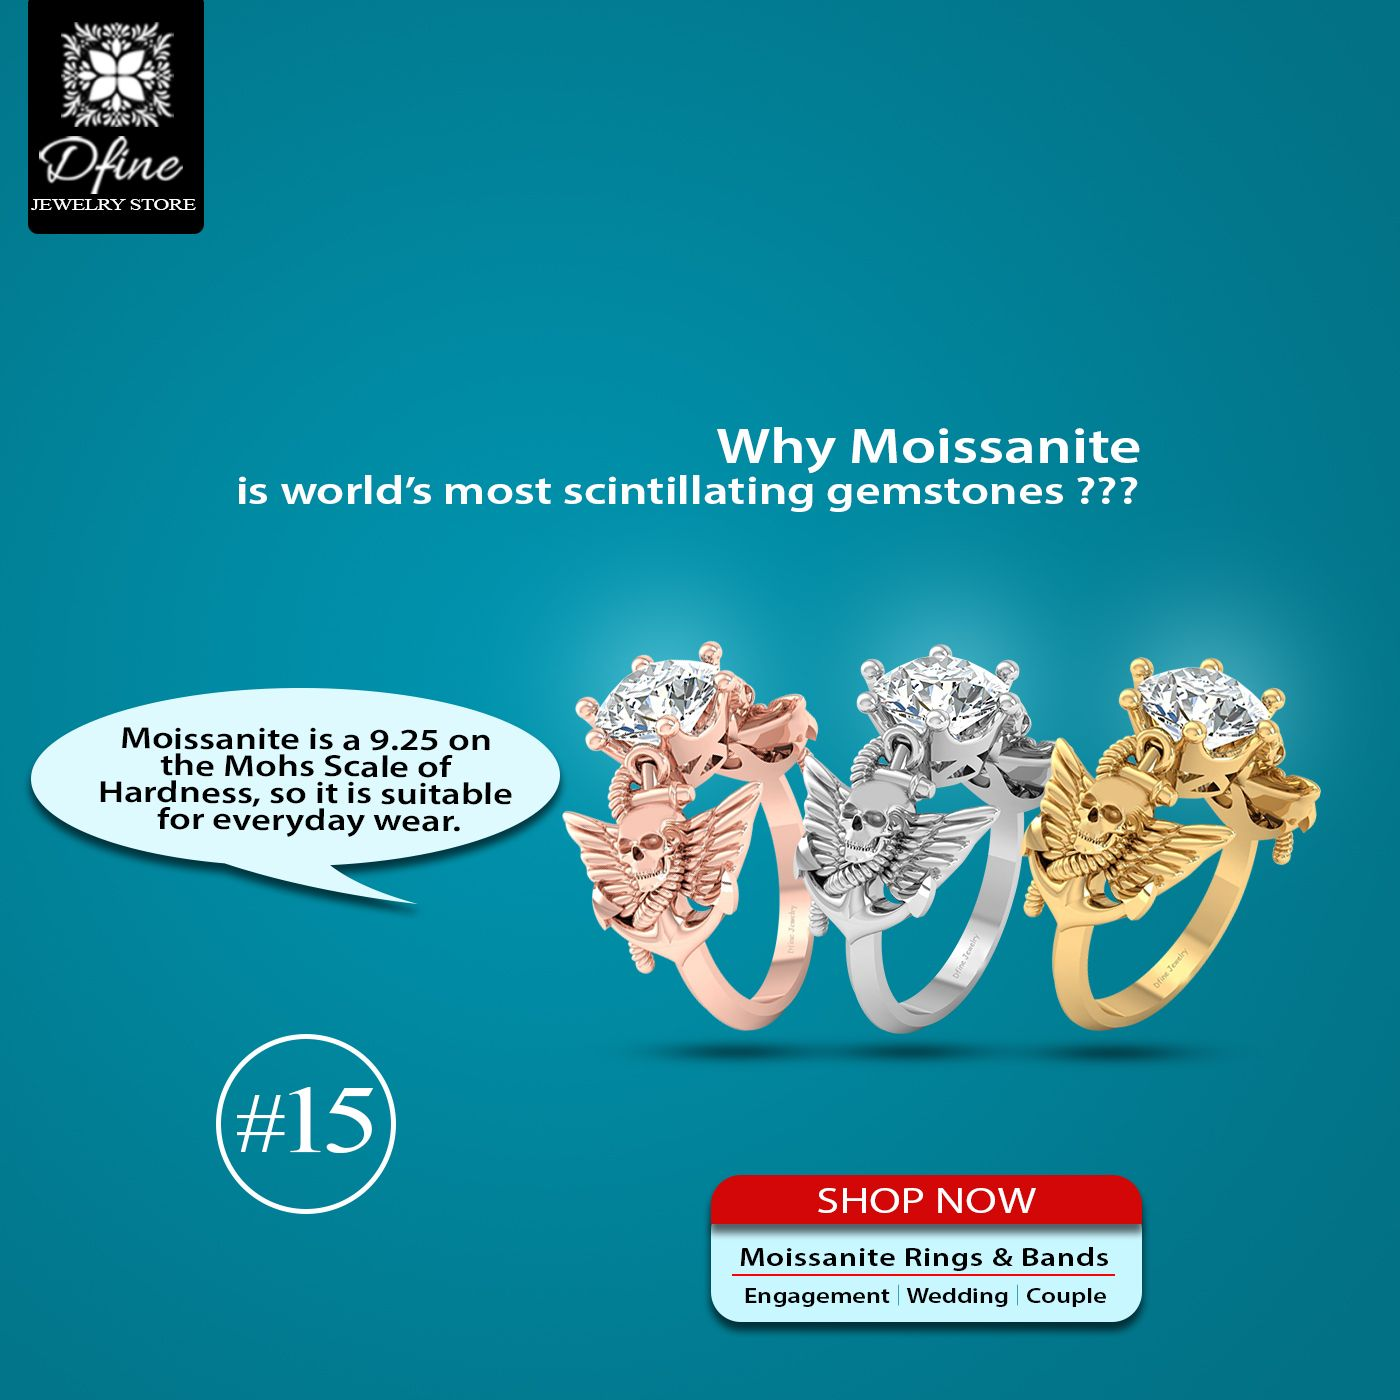 Yes!! moissanite is world's most scintillating gemstones..... . . . . Solitaire Moissanite Skull Wedding Ring Winged Skull and Anchor Ring . . . . . It's a 6 Prong Set 8.0mm Excellent Round Cut With VVS-VS Clarity Lab Created Approx 2.20ct Solitaire White Moissanite Skull Engagement Ring For Women. . . . visit our onlinestore www.dfinejewelrystore.com for moissanite jewelry & buy now . . . #dfinejewelrystore #skull #skullart #skulls💀 #skullcollector #skullring #gothic #gothicring #gothicrings